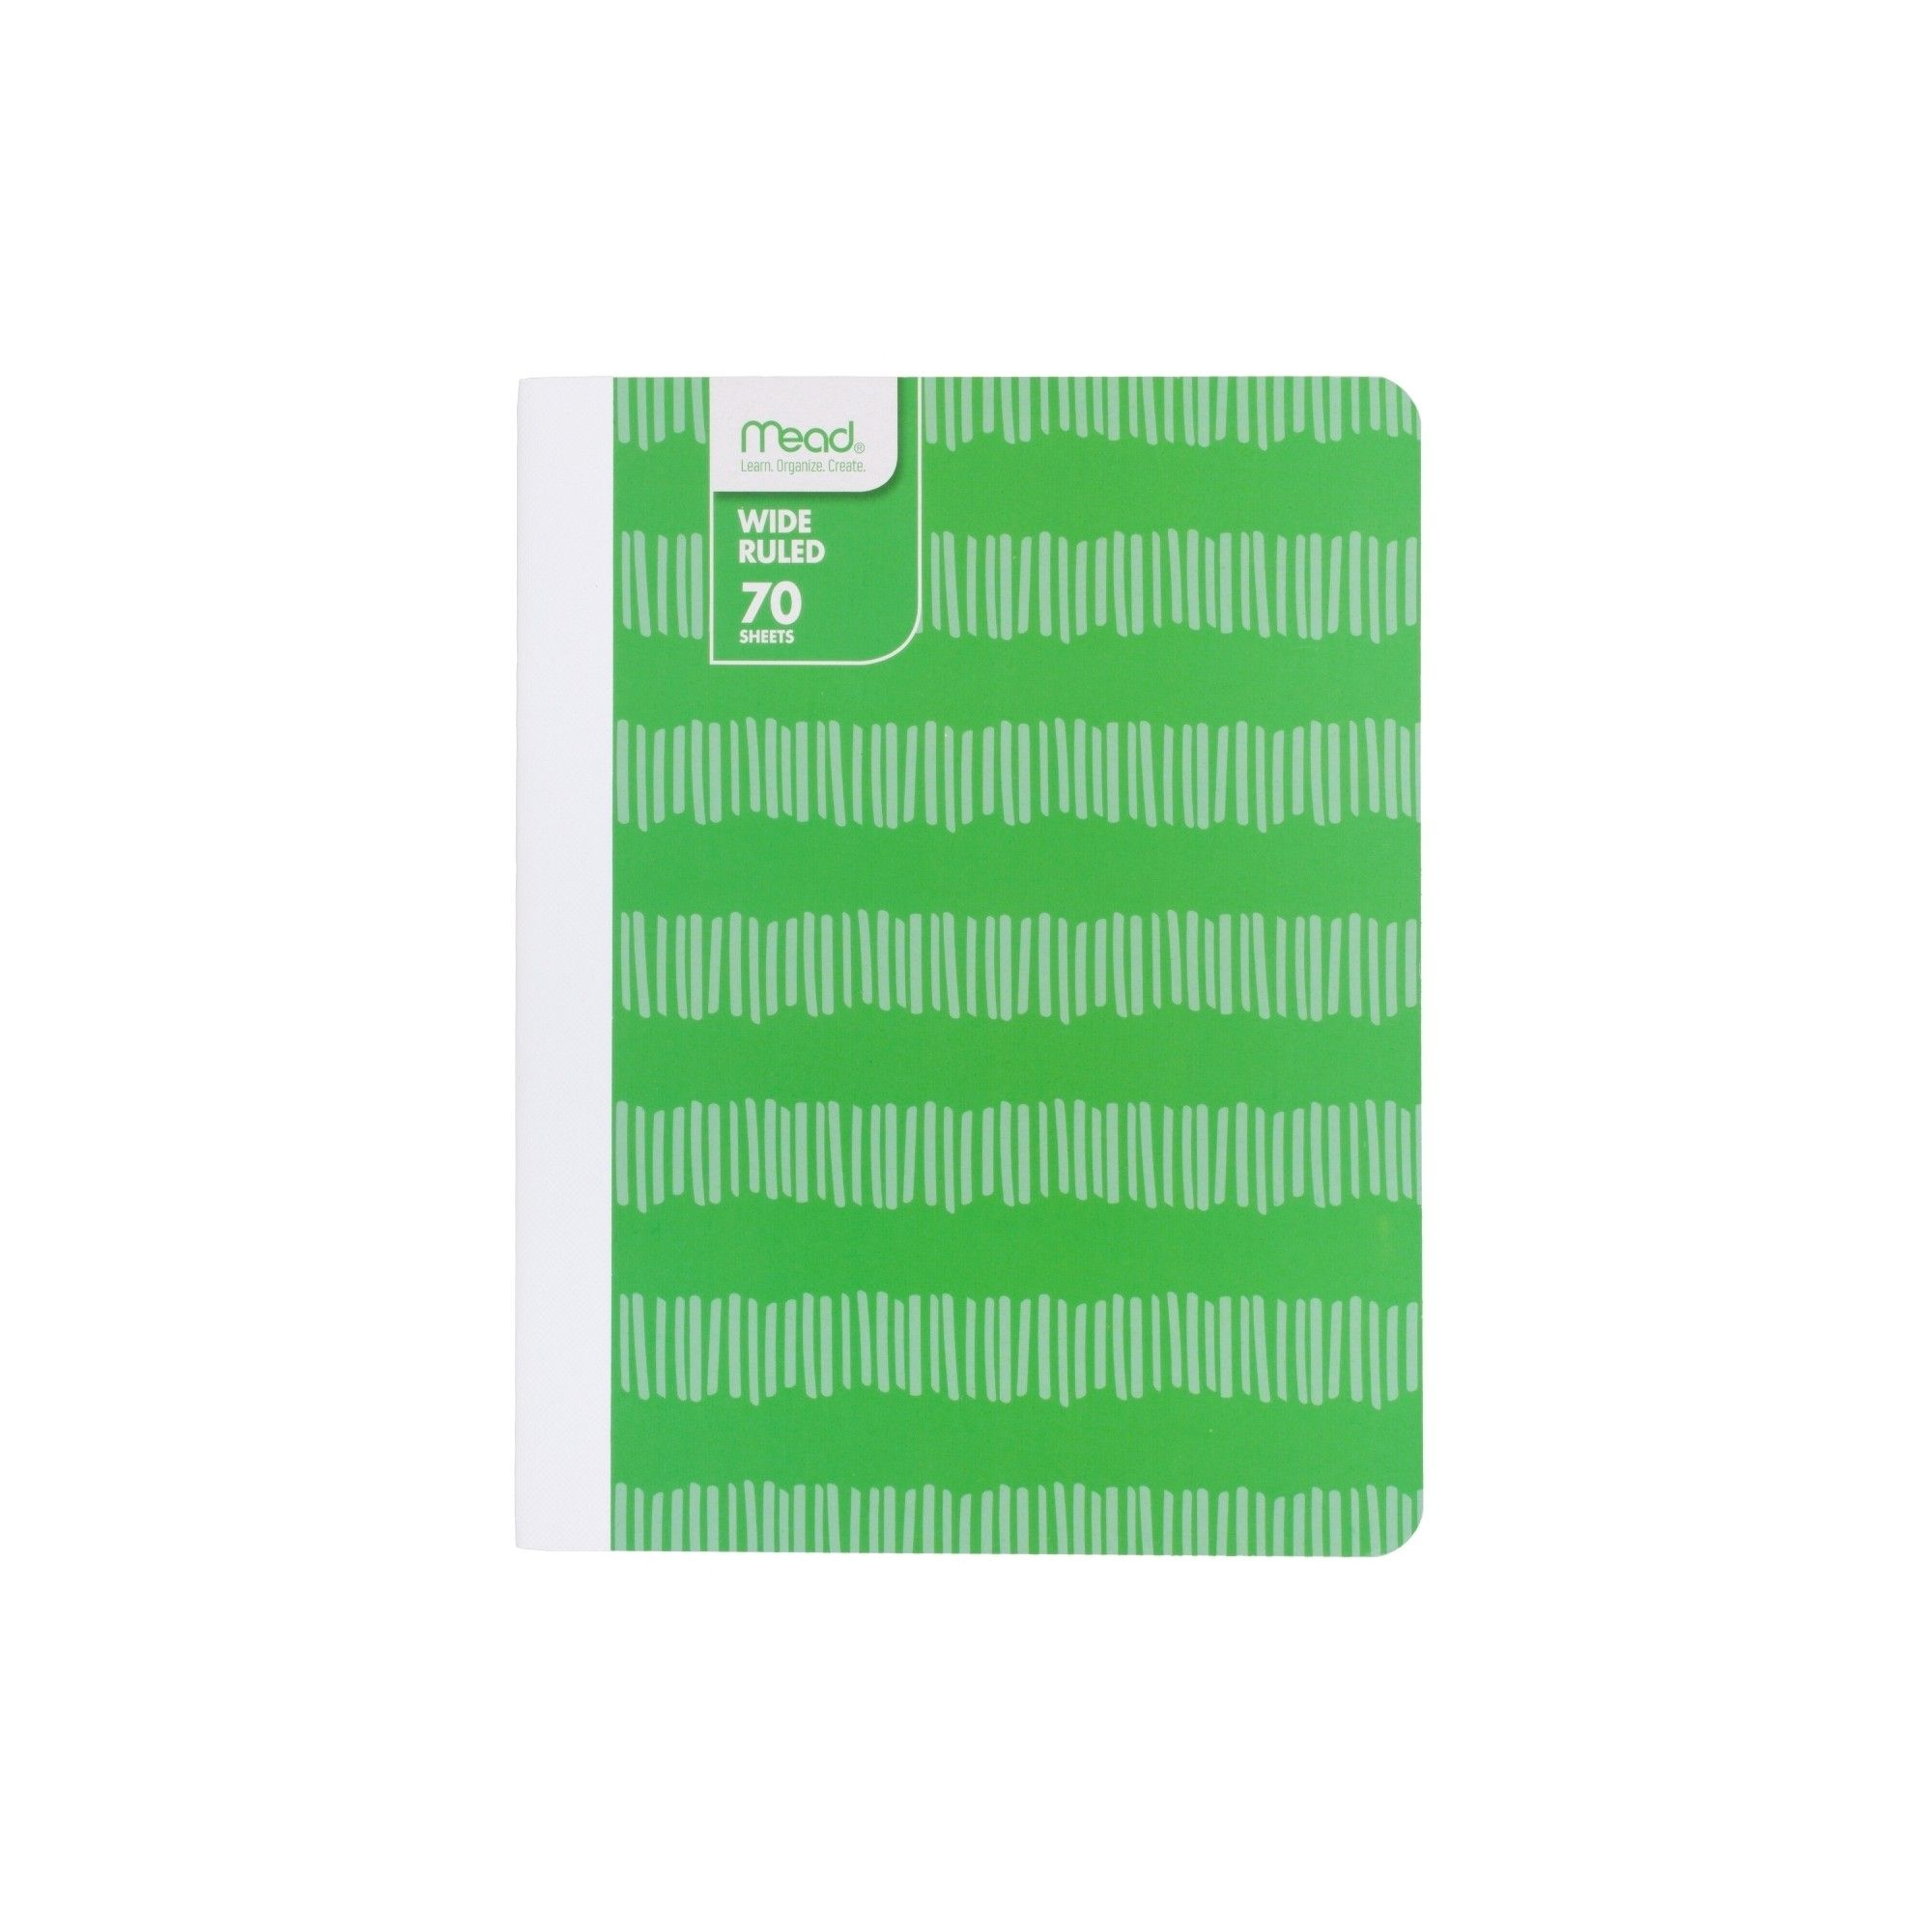 Mead Composition Notebook Wide Ruled - Green